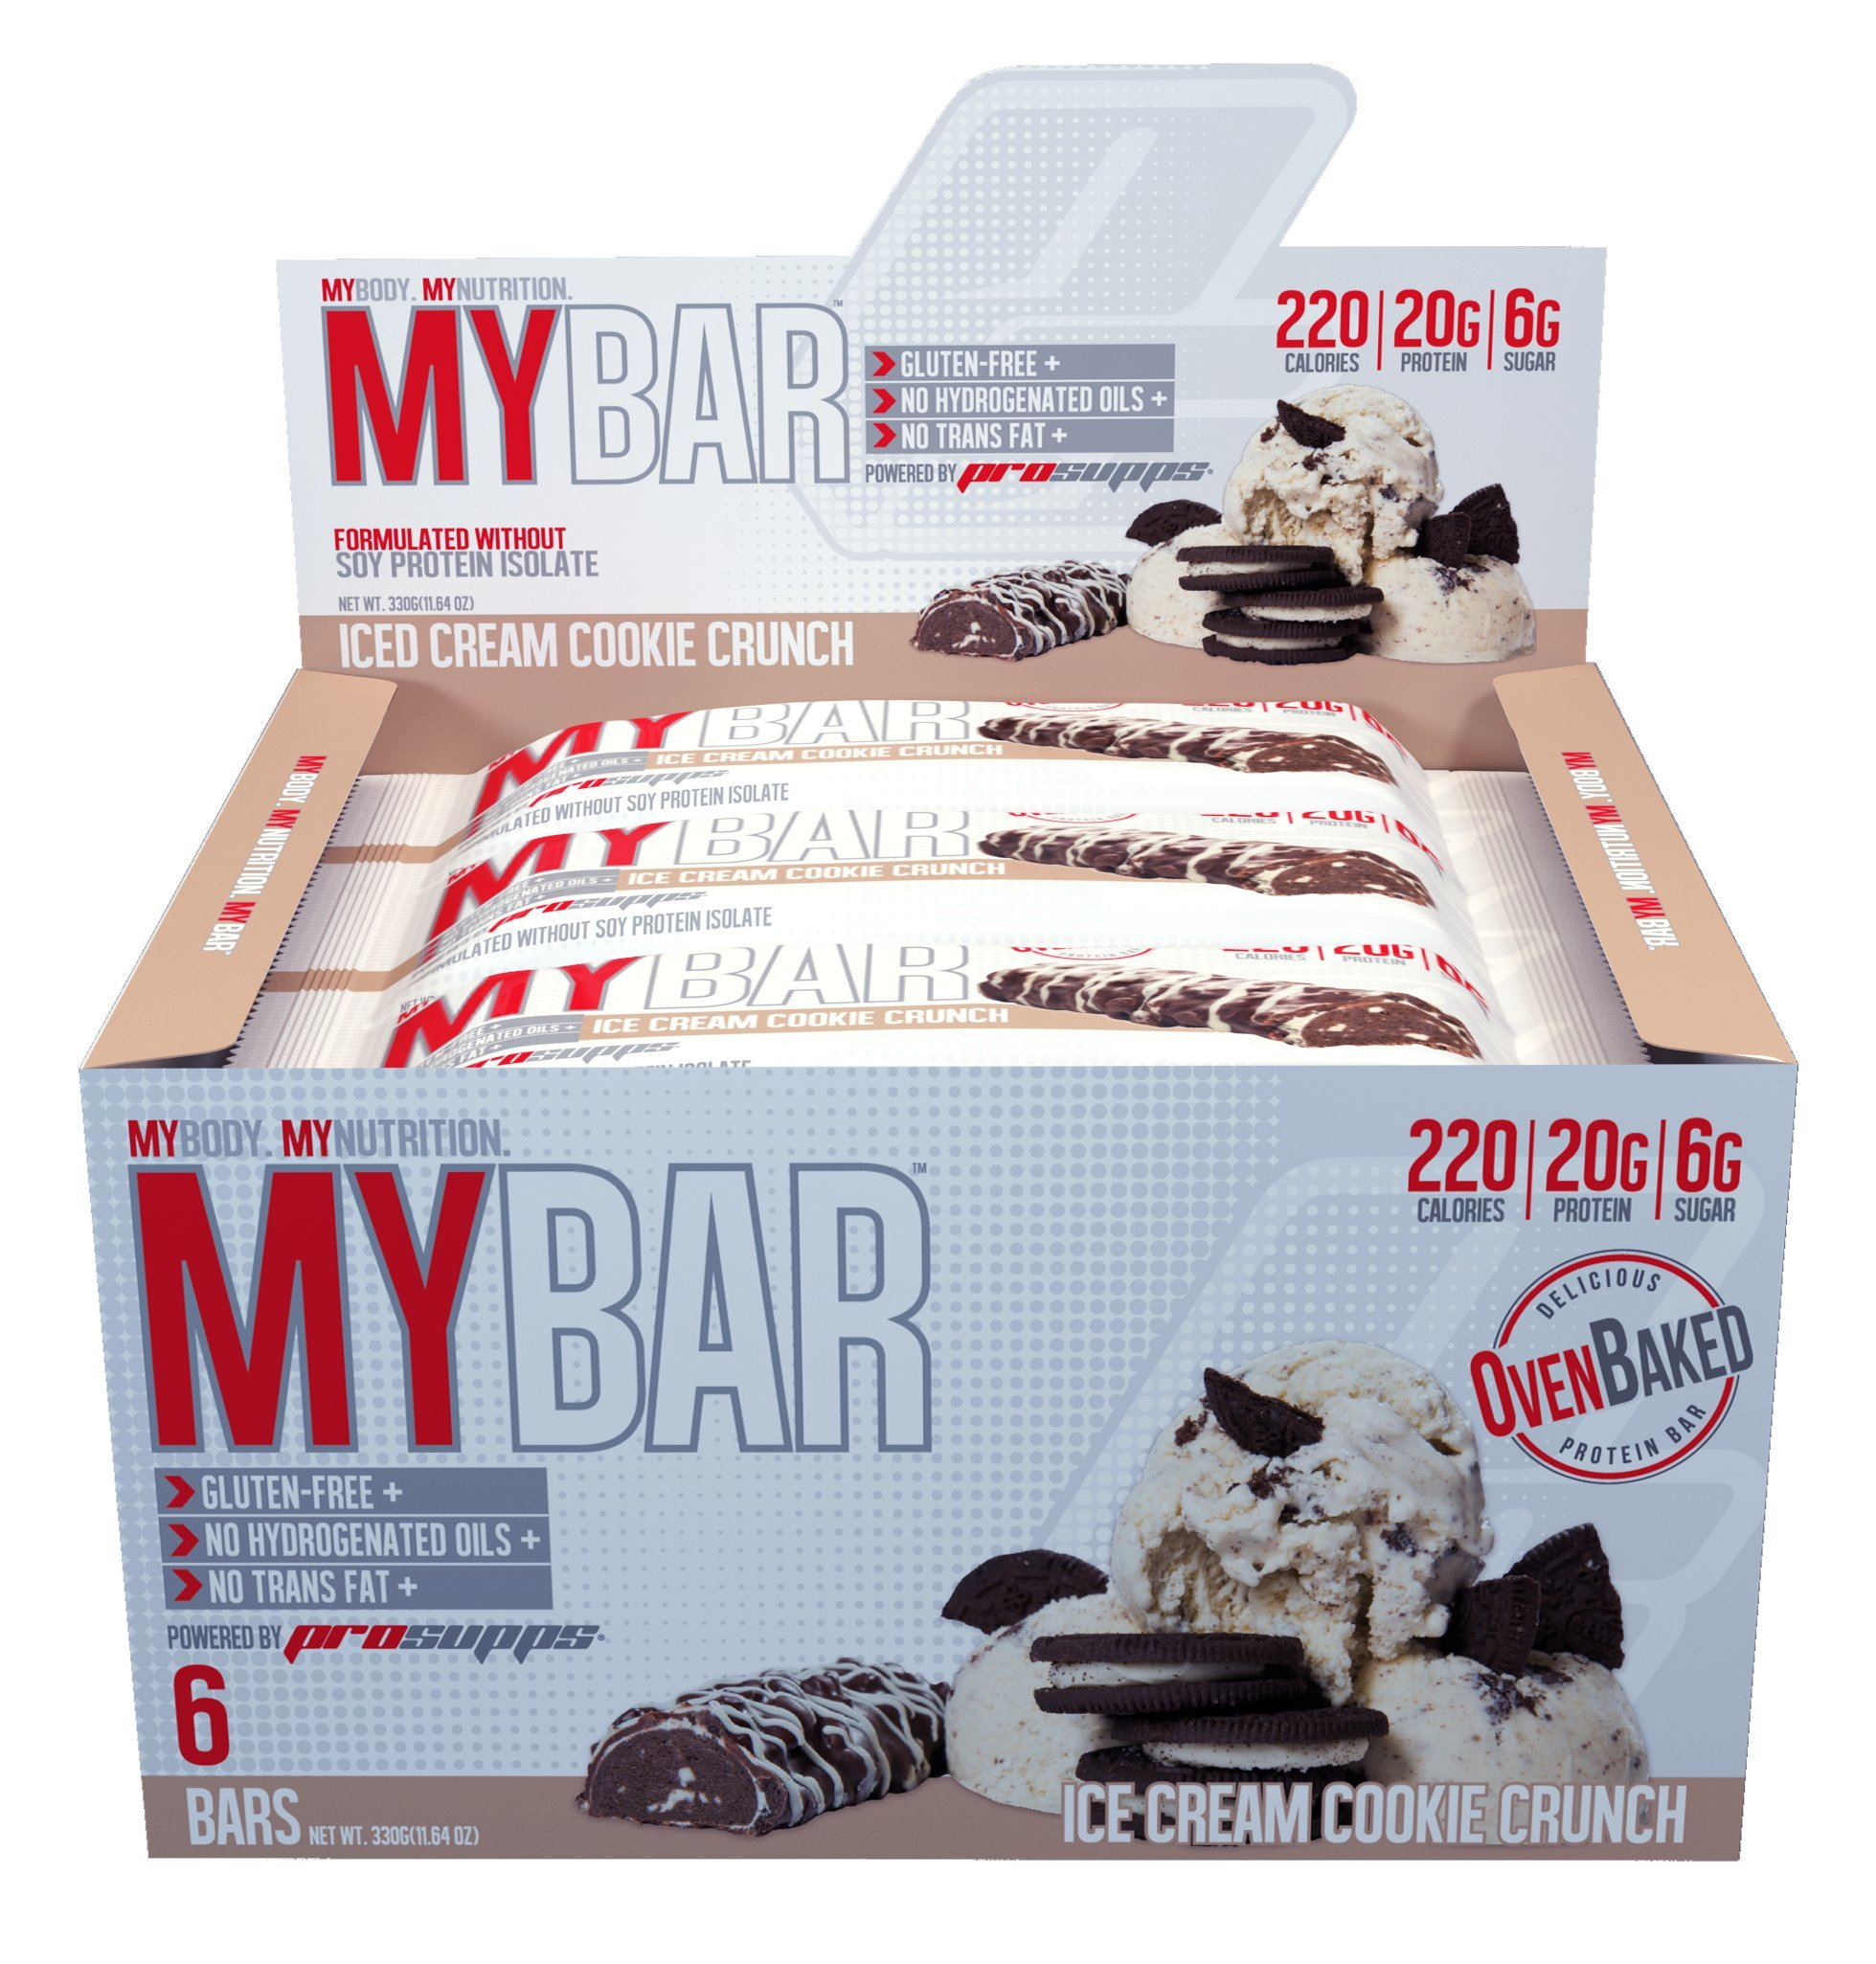 Pro Supps MYBAR Delicious Oven Baked Protein Bar (Ice Cream Cookie Crunch), 20g Protein, Only 6g Sugar, Gluten-free, No Trans Fat, Healthy on-the-go Snack. 6 Count, Net WT 1.94 ounces